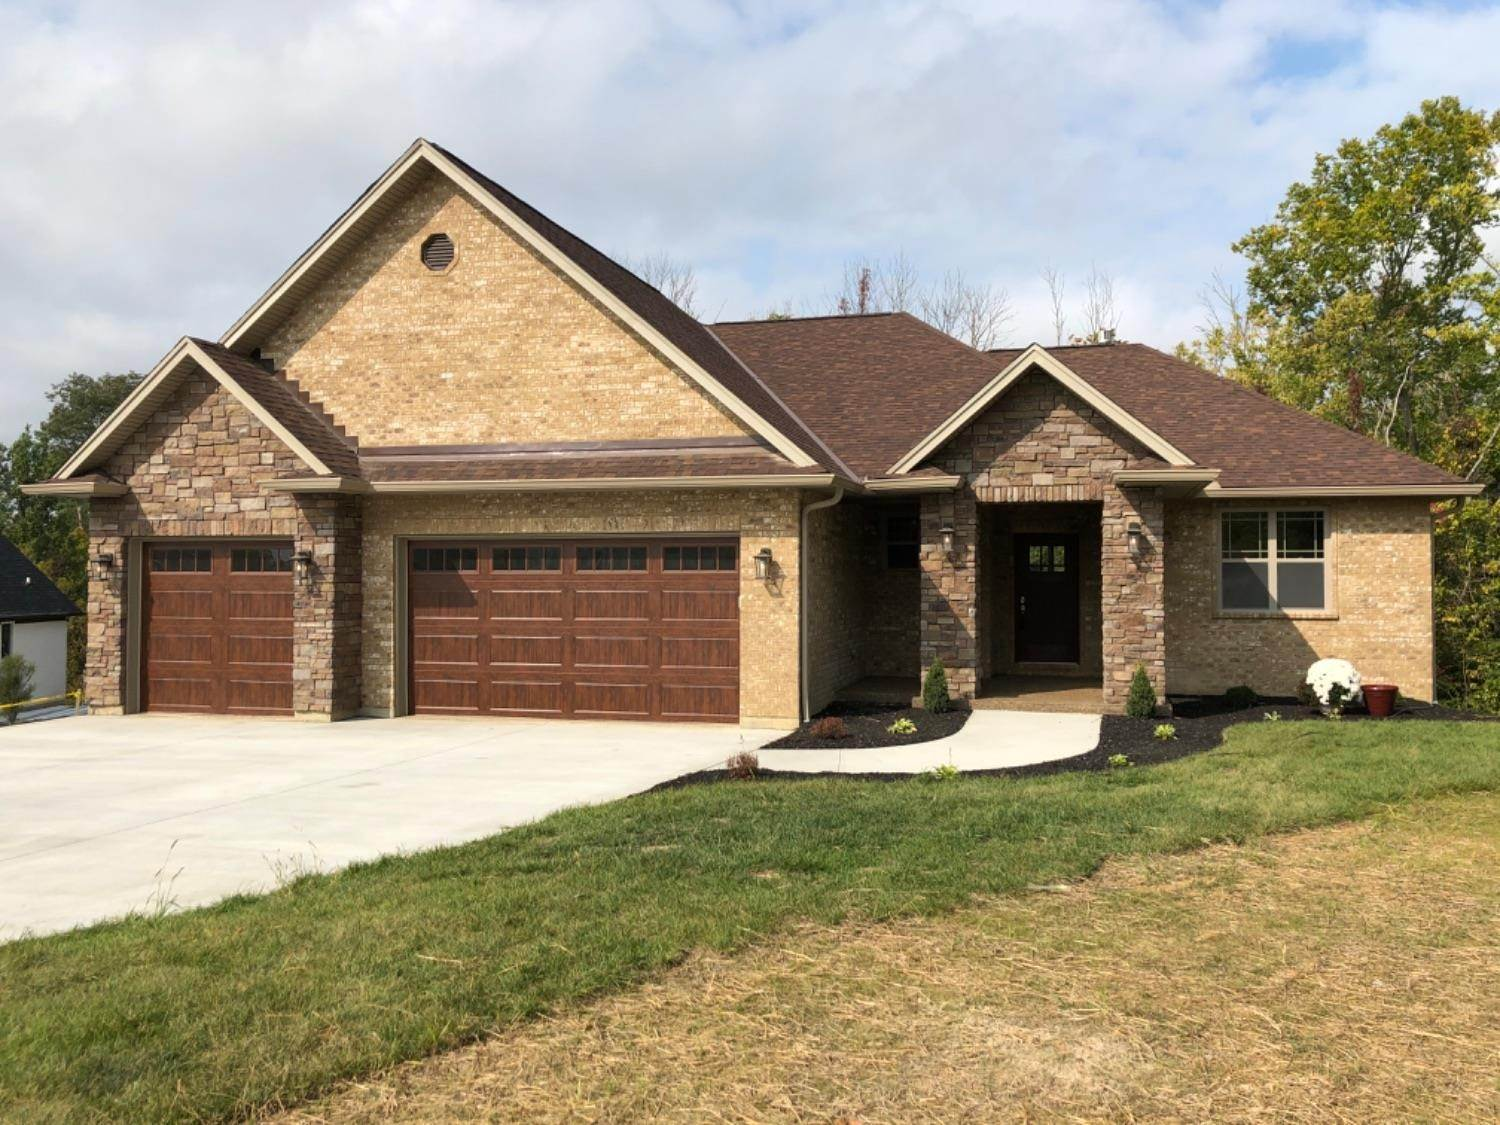 Single Family Homes for Sale at 9801 Islandview Lane Colerain Township, Ohio 45252 United States